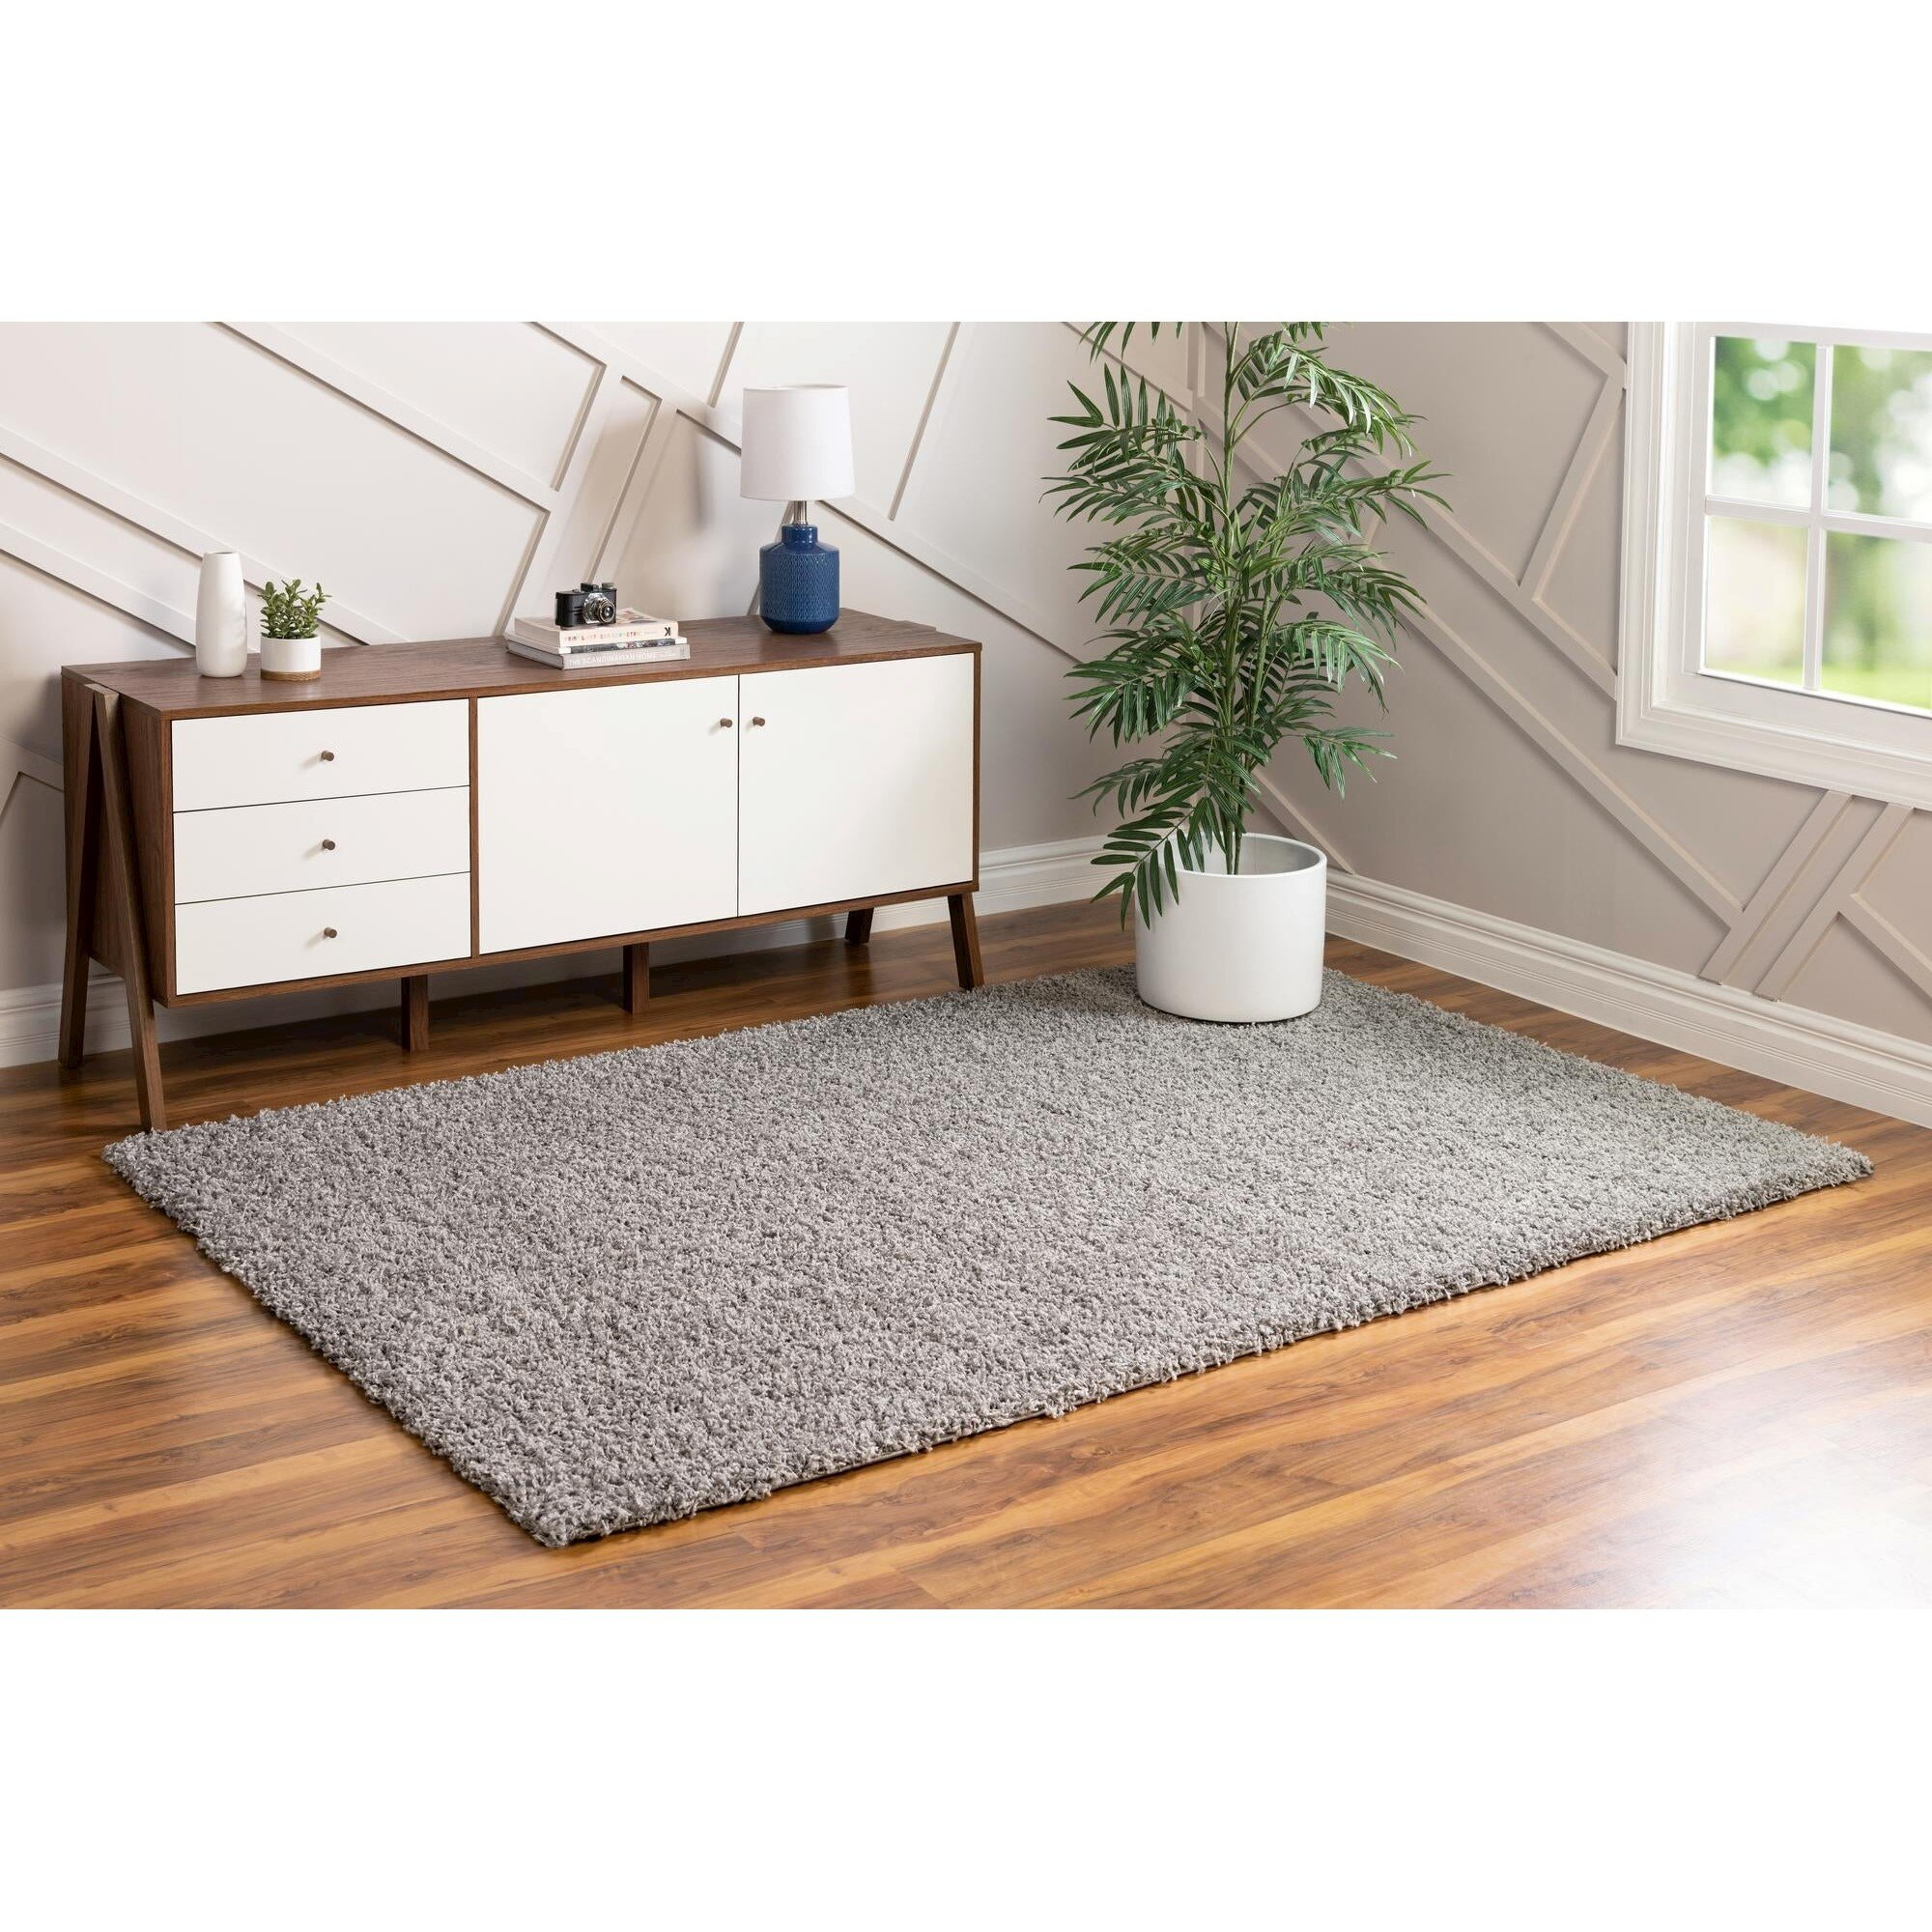 3 X 5 Area Rugs Free Shipping Over 35 Wayfair